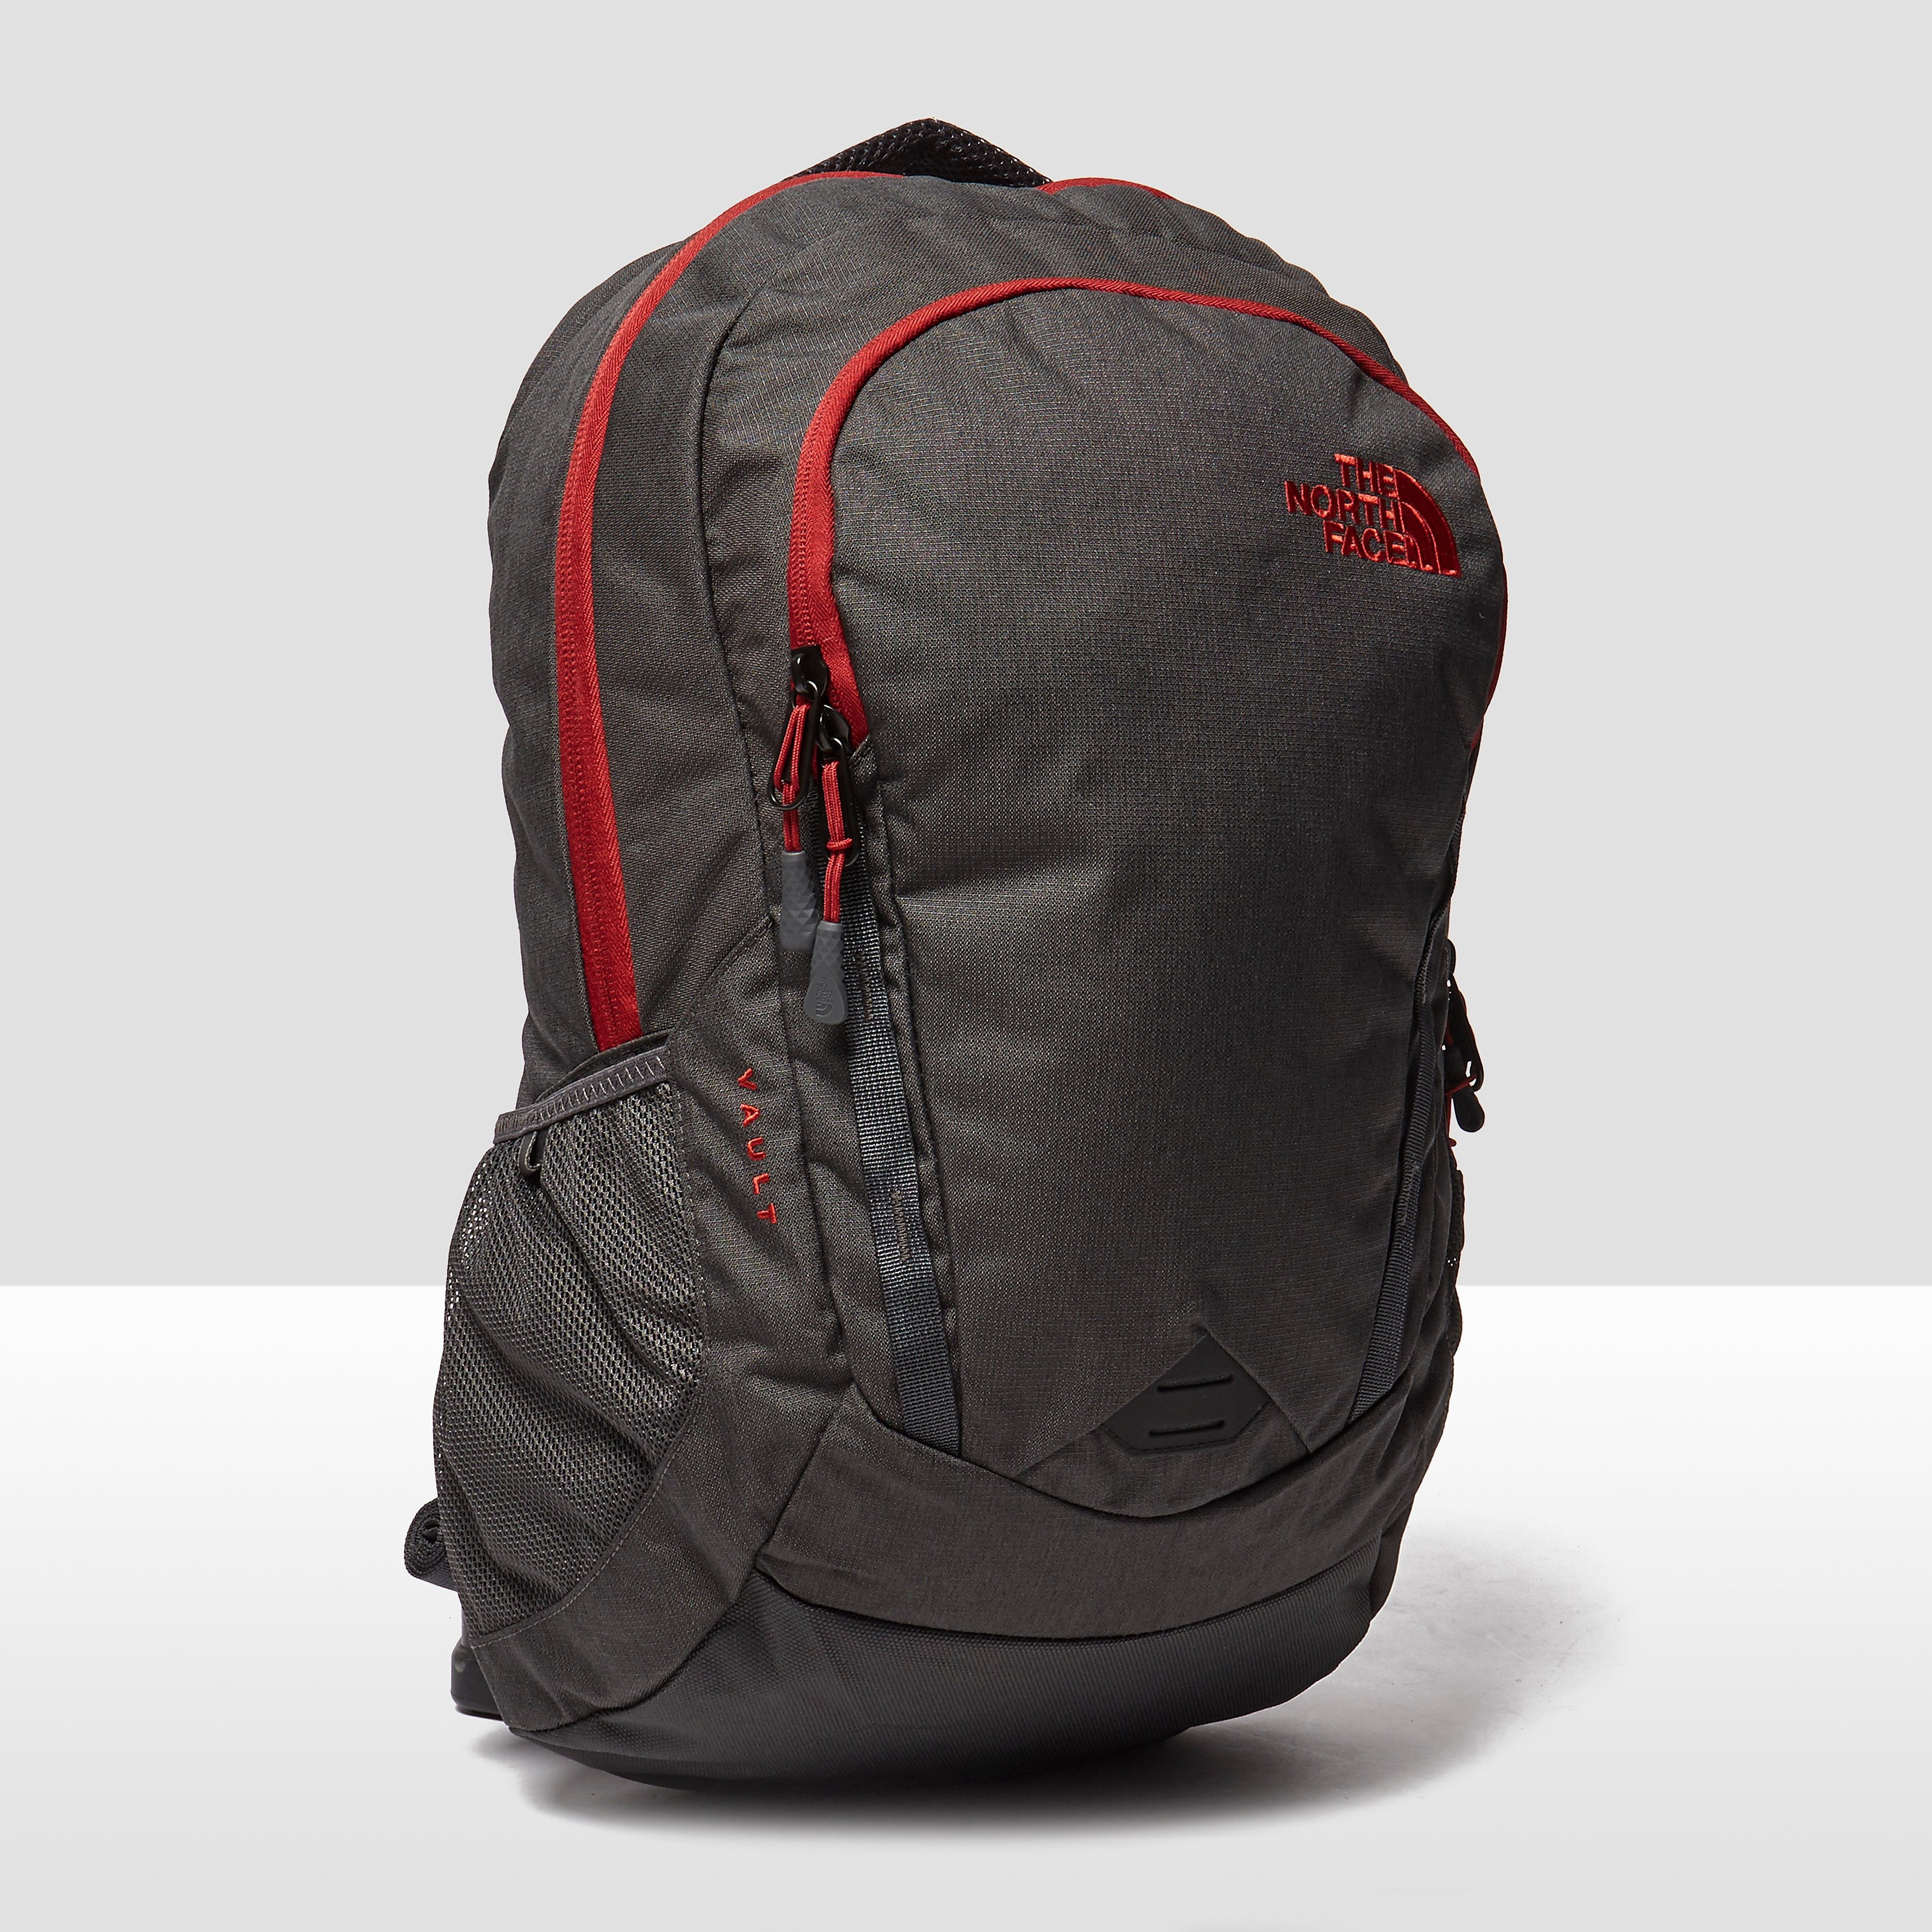 The North Face Women's Vault 28L Backpack